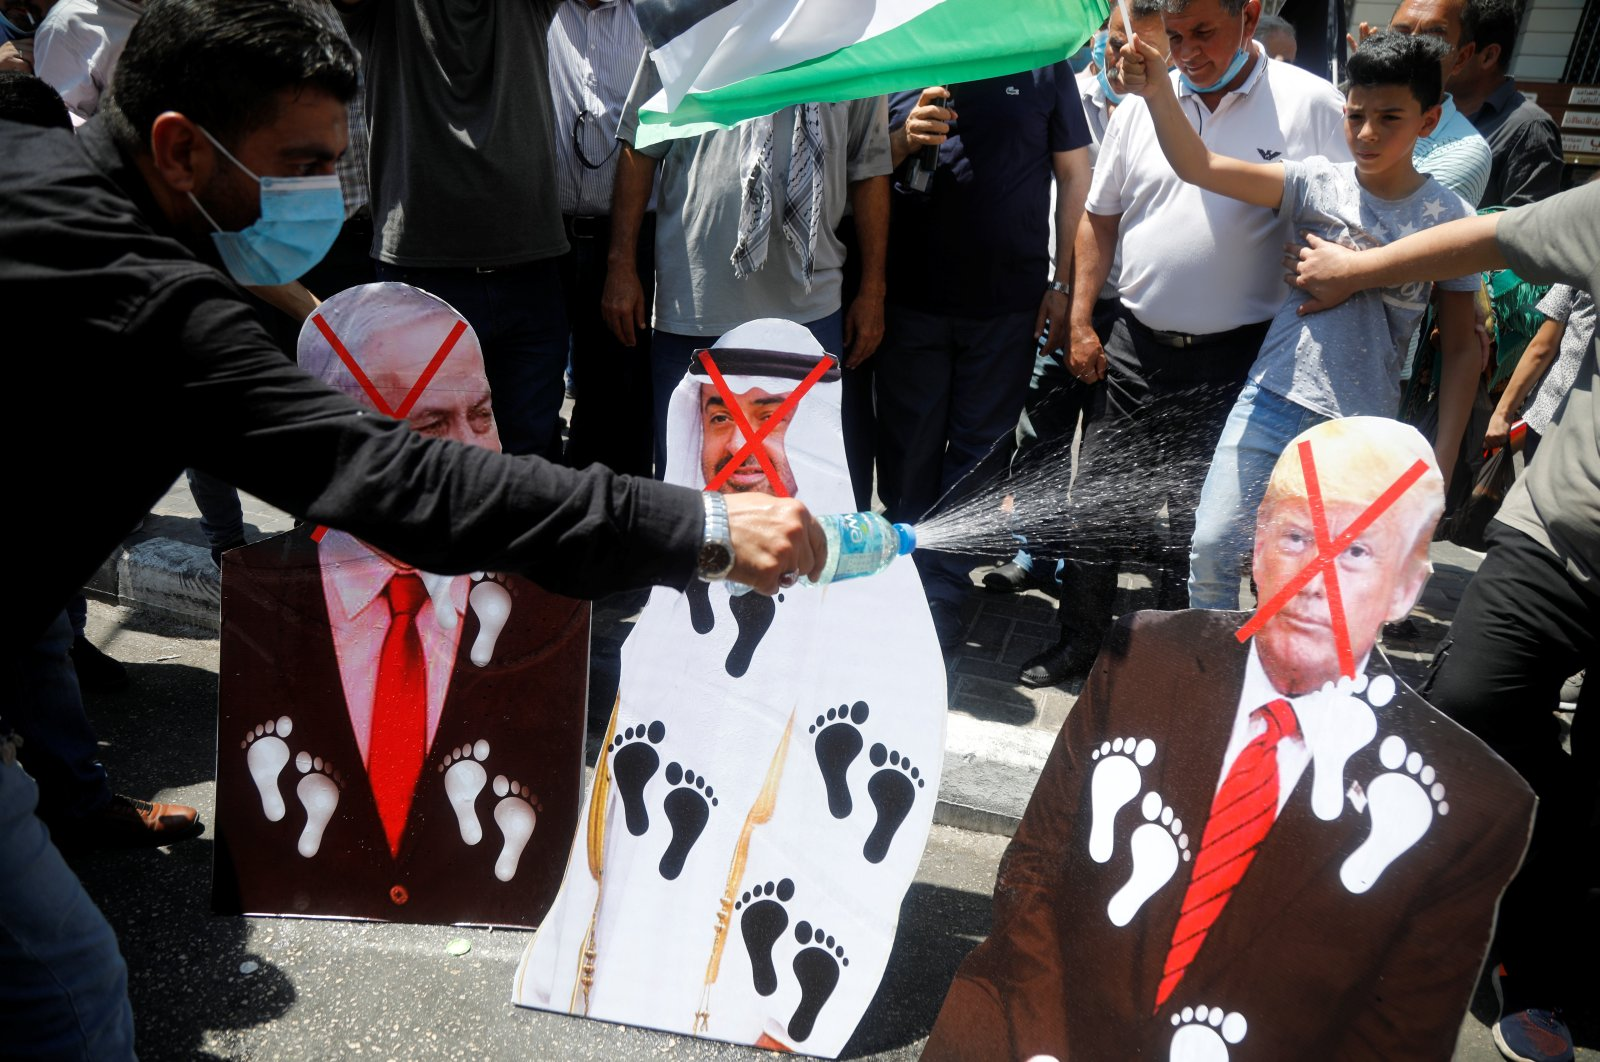 Palestinians burn cutouts depicting U.S. President Donald Trump, Abu Dhabi Crown Prince Mohammed bin Zayed al-Nahyan and Israeli Prime Minister Benjamin Netanyahu during a protest against the United Arab Emirates' (UAE) deal with Israel to normalize relations, in Nablus in the Israeli-occupied West Bank, Aug. 14, 2020. (Reuters Photo)